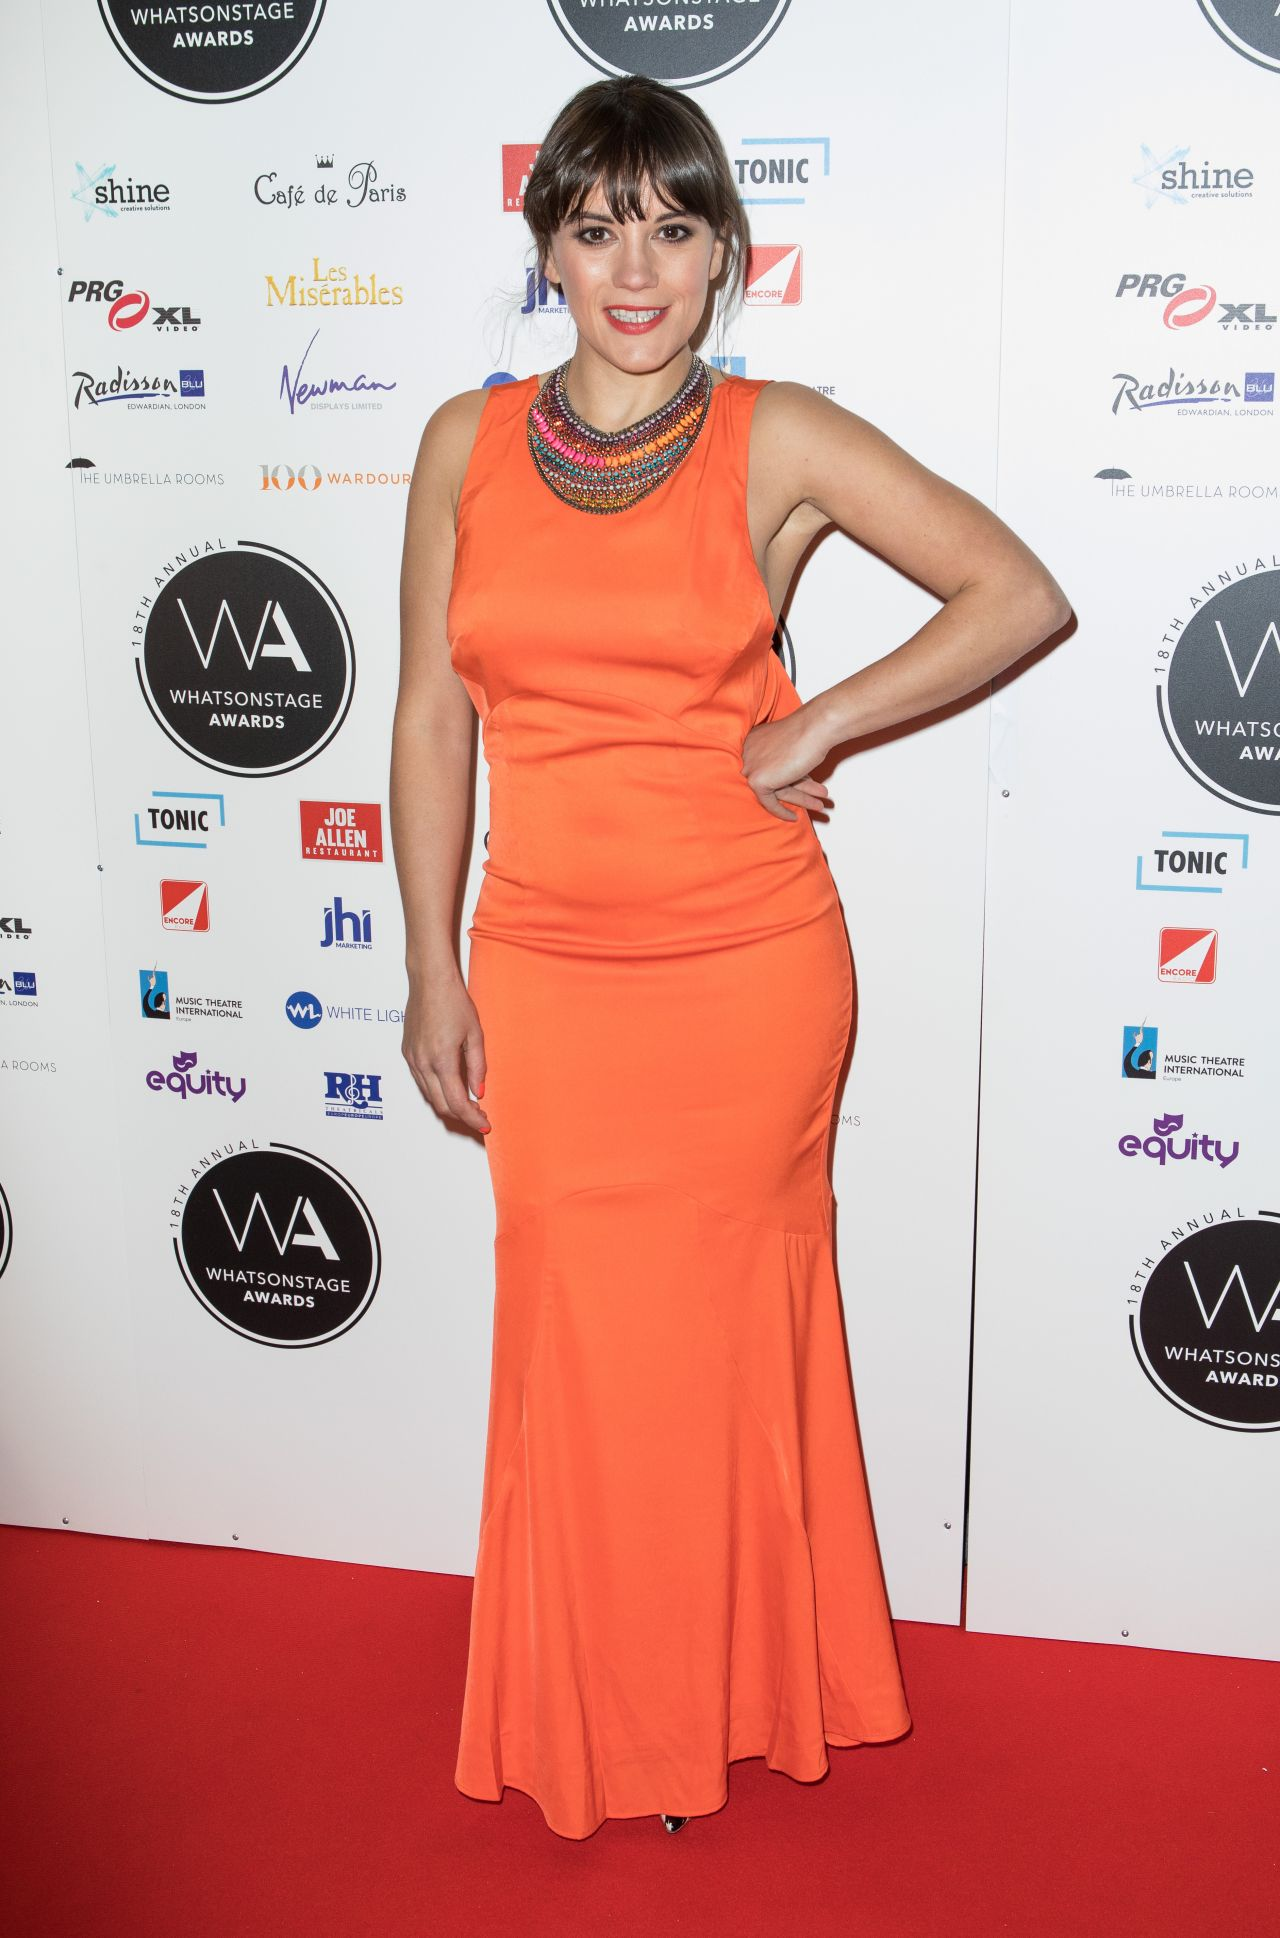 vikki-stone-2018-whatsonstage-awards-in-london-6.jpg